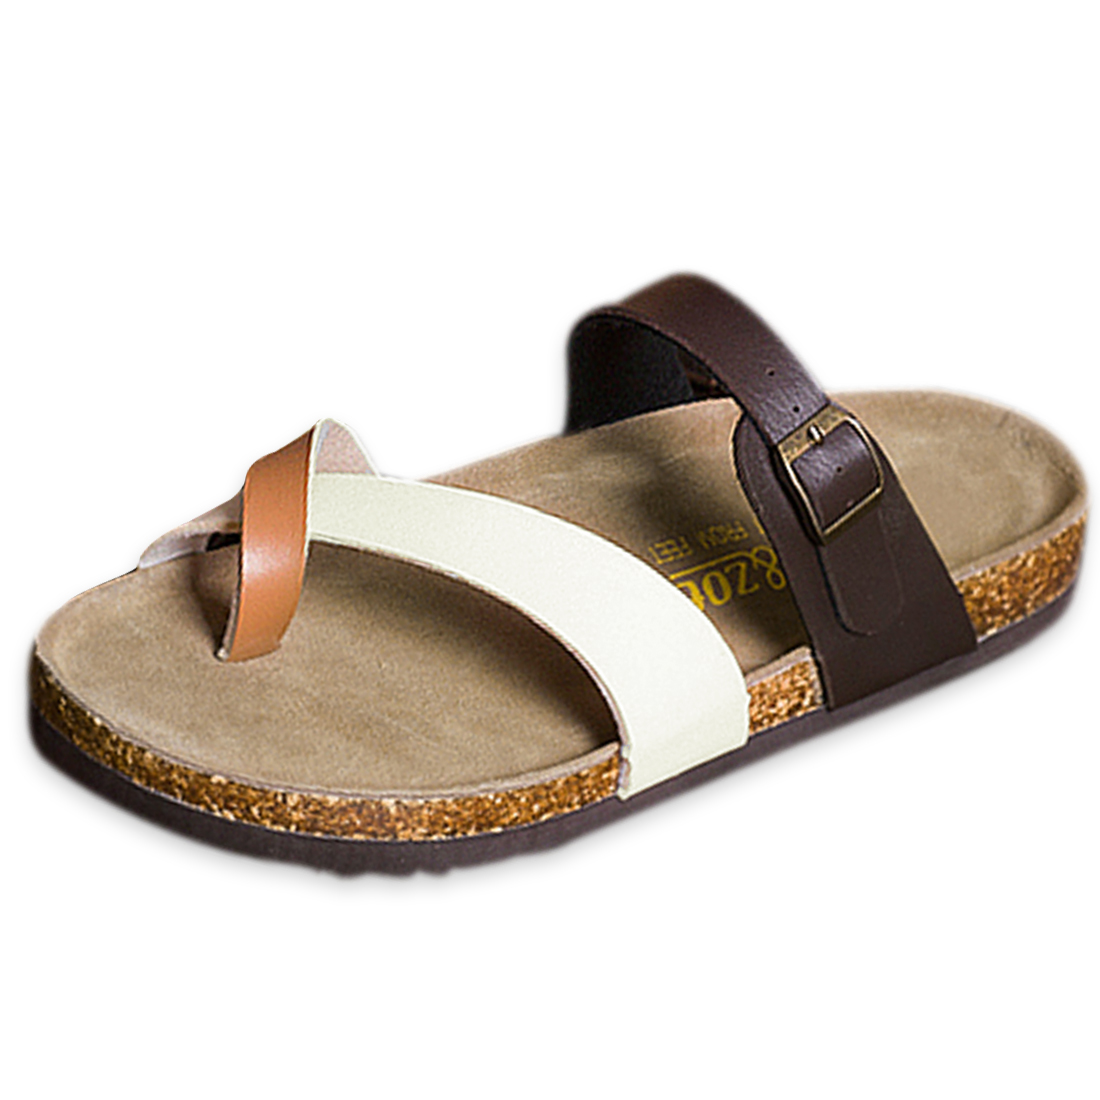 Stylish Two Strapes Flip Flop Sandal for Men Coffee US Size 10